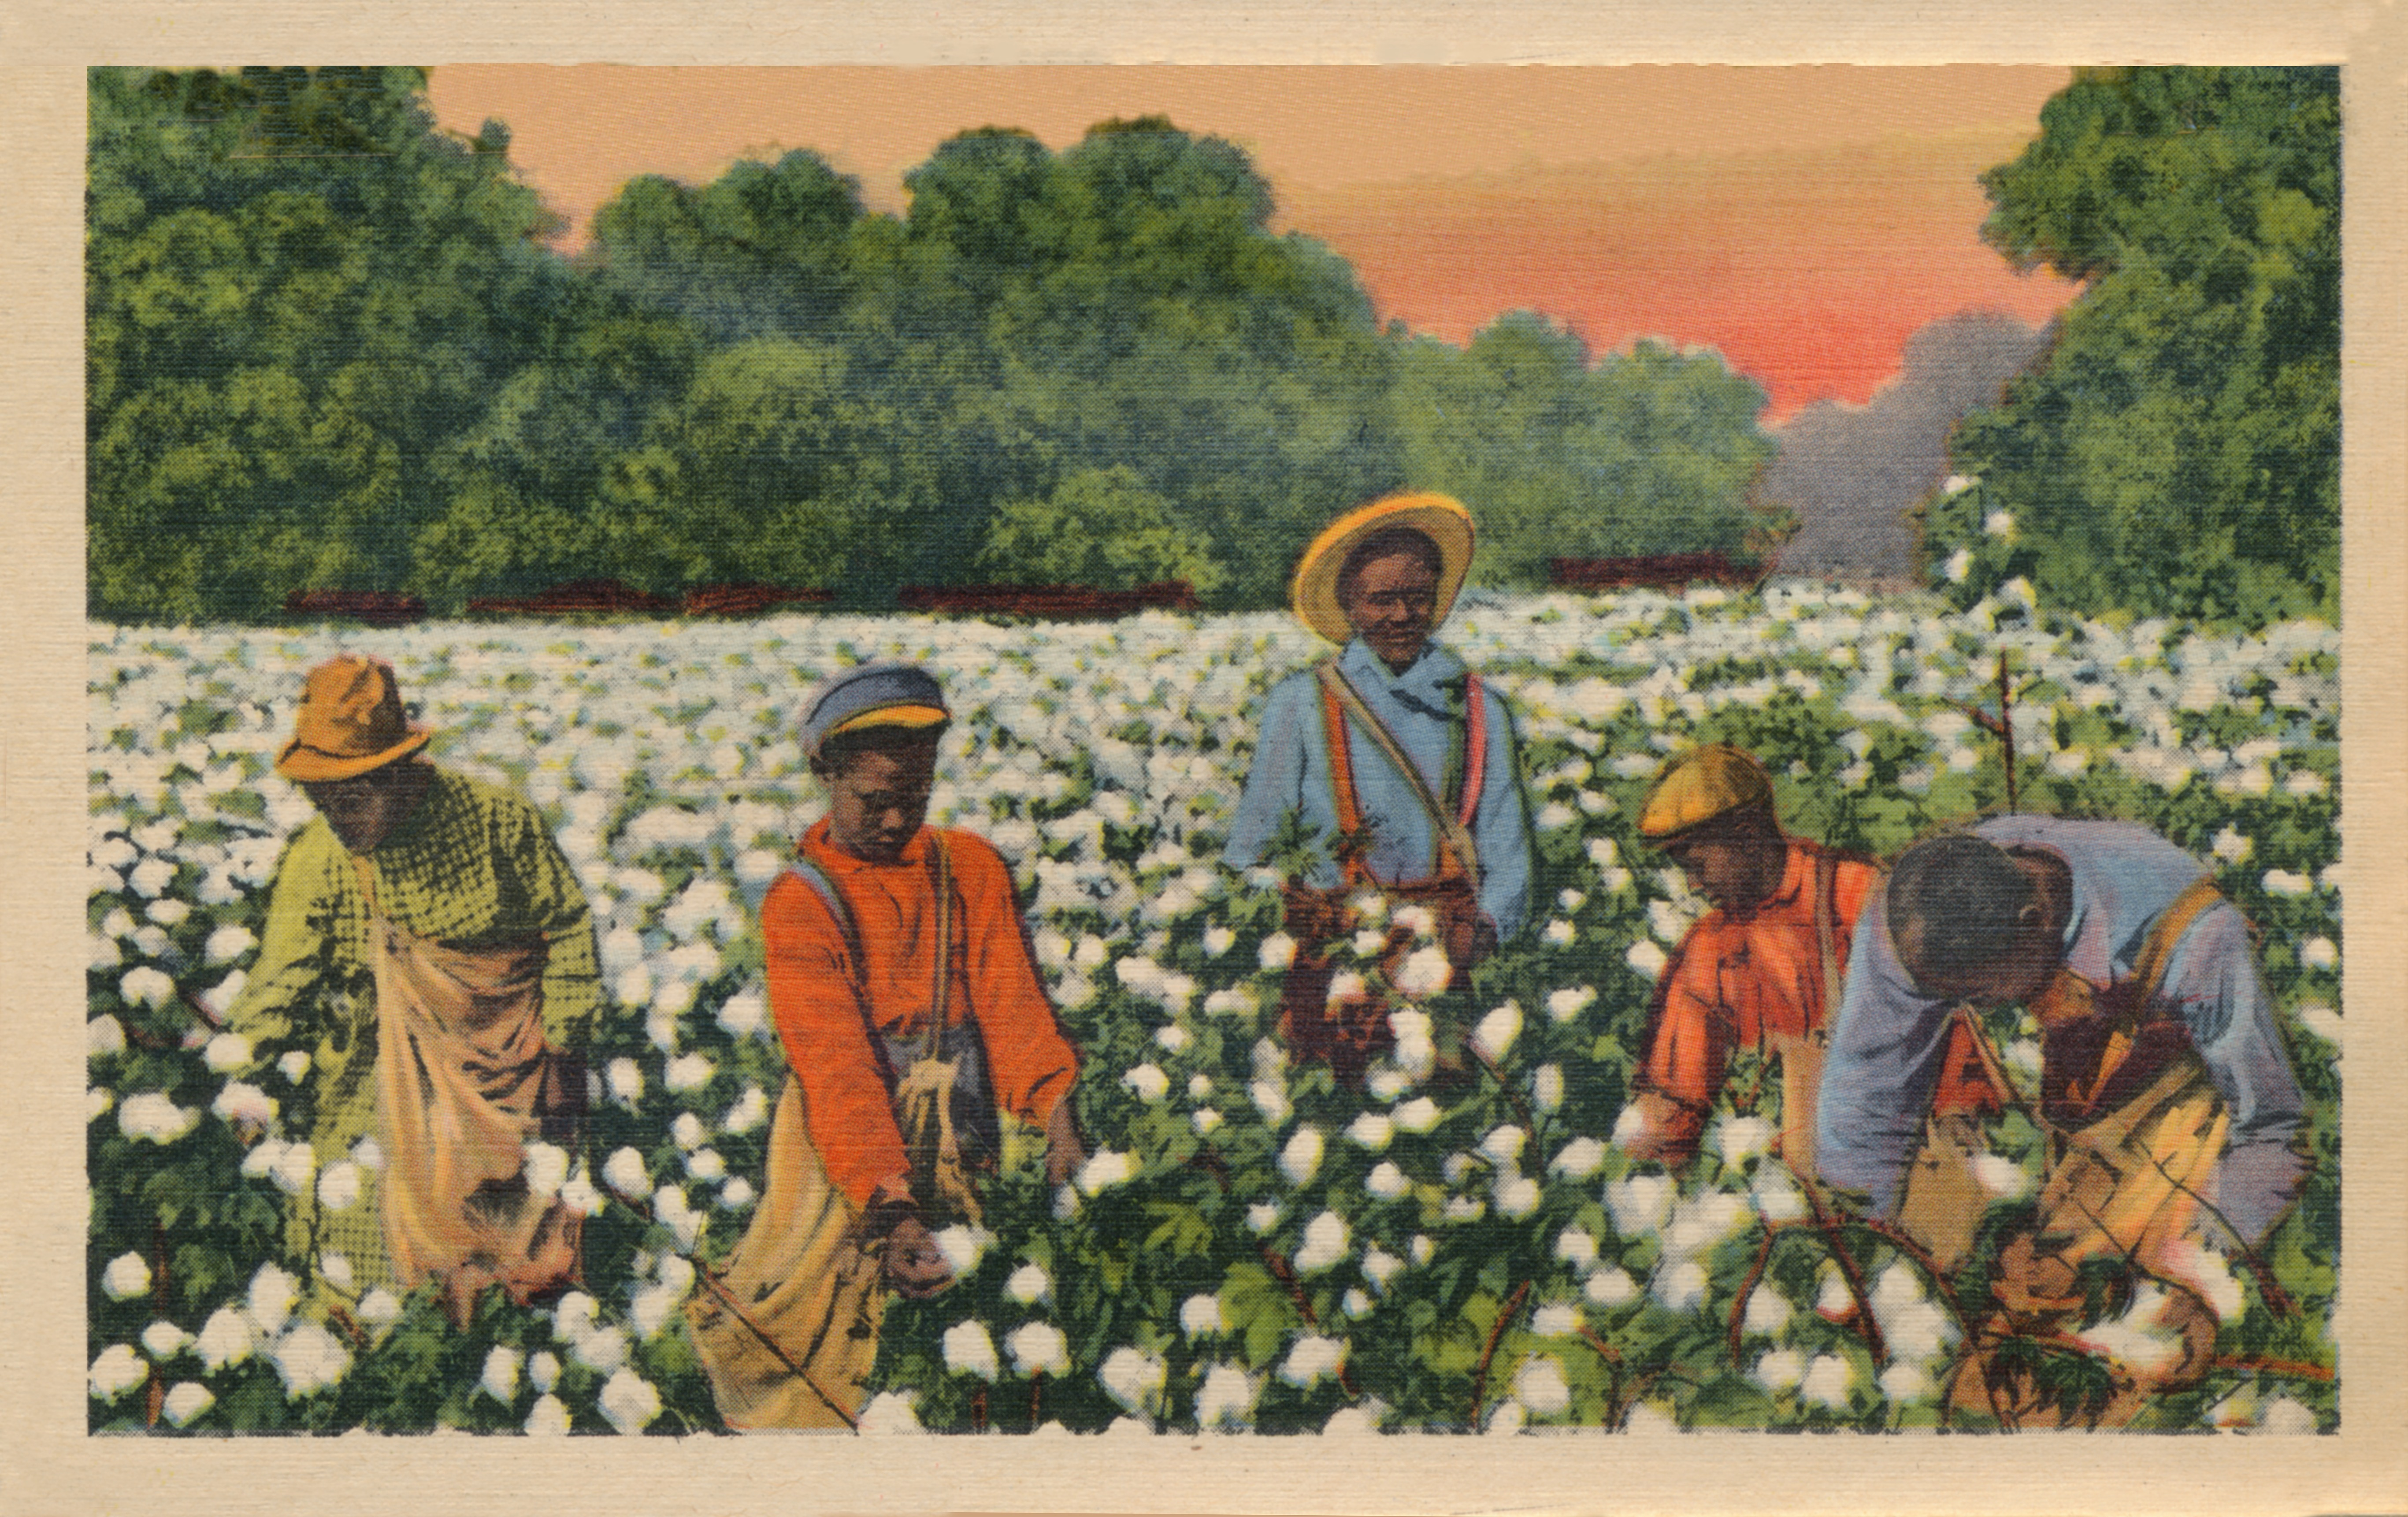 The Most Damaging Myths About Slavery, Debunked